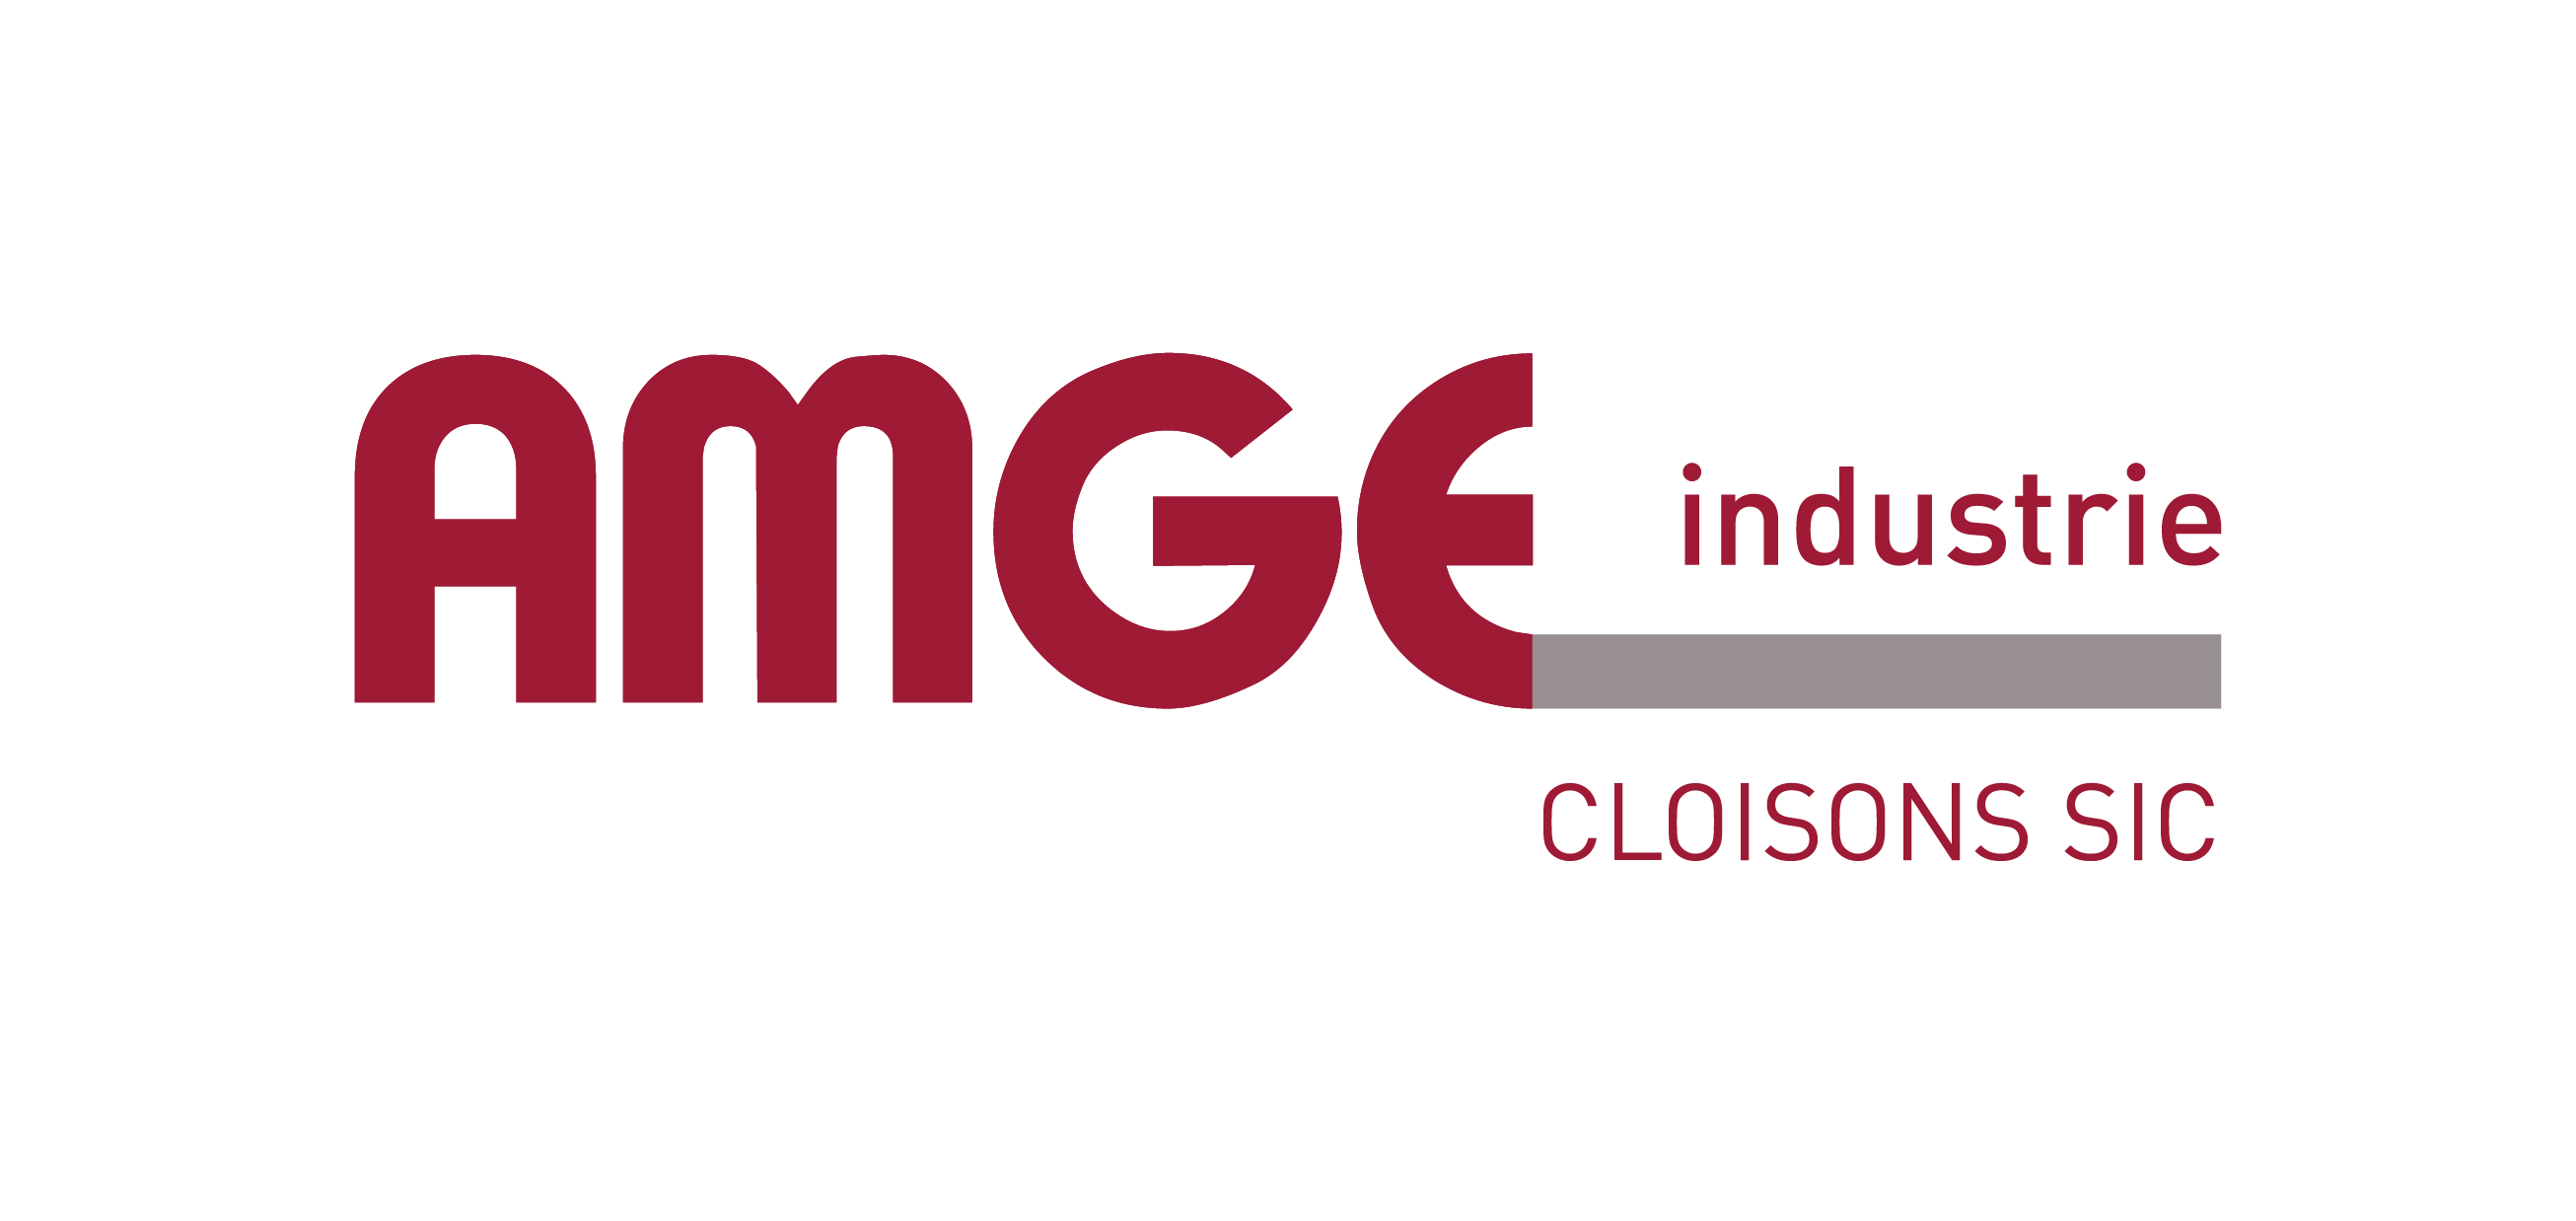 1529575270-amge-industrie-cloisons-sic.png